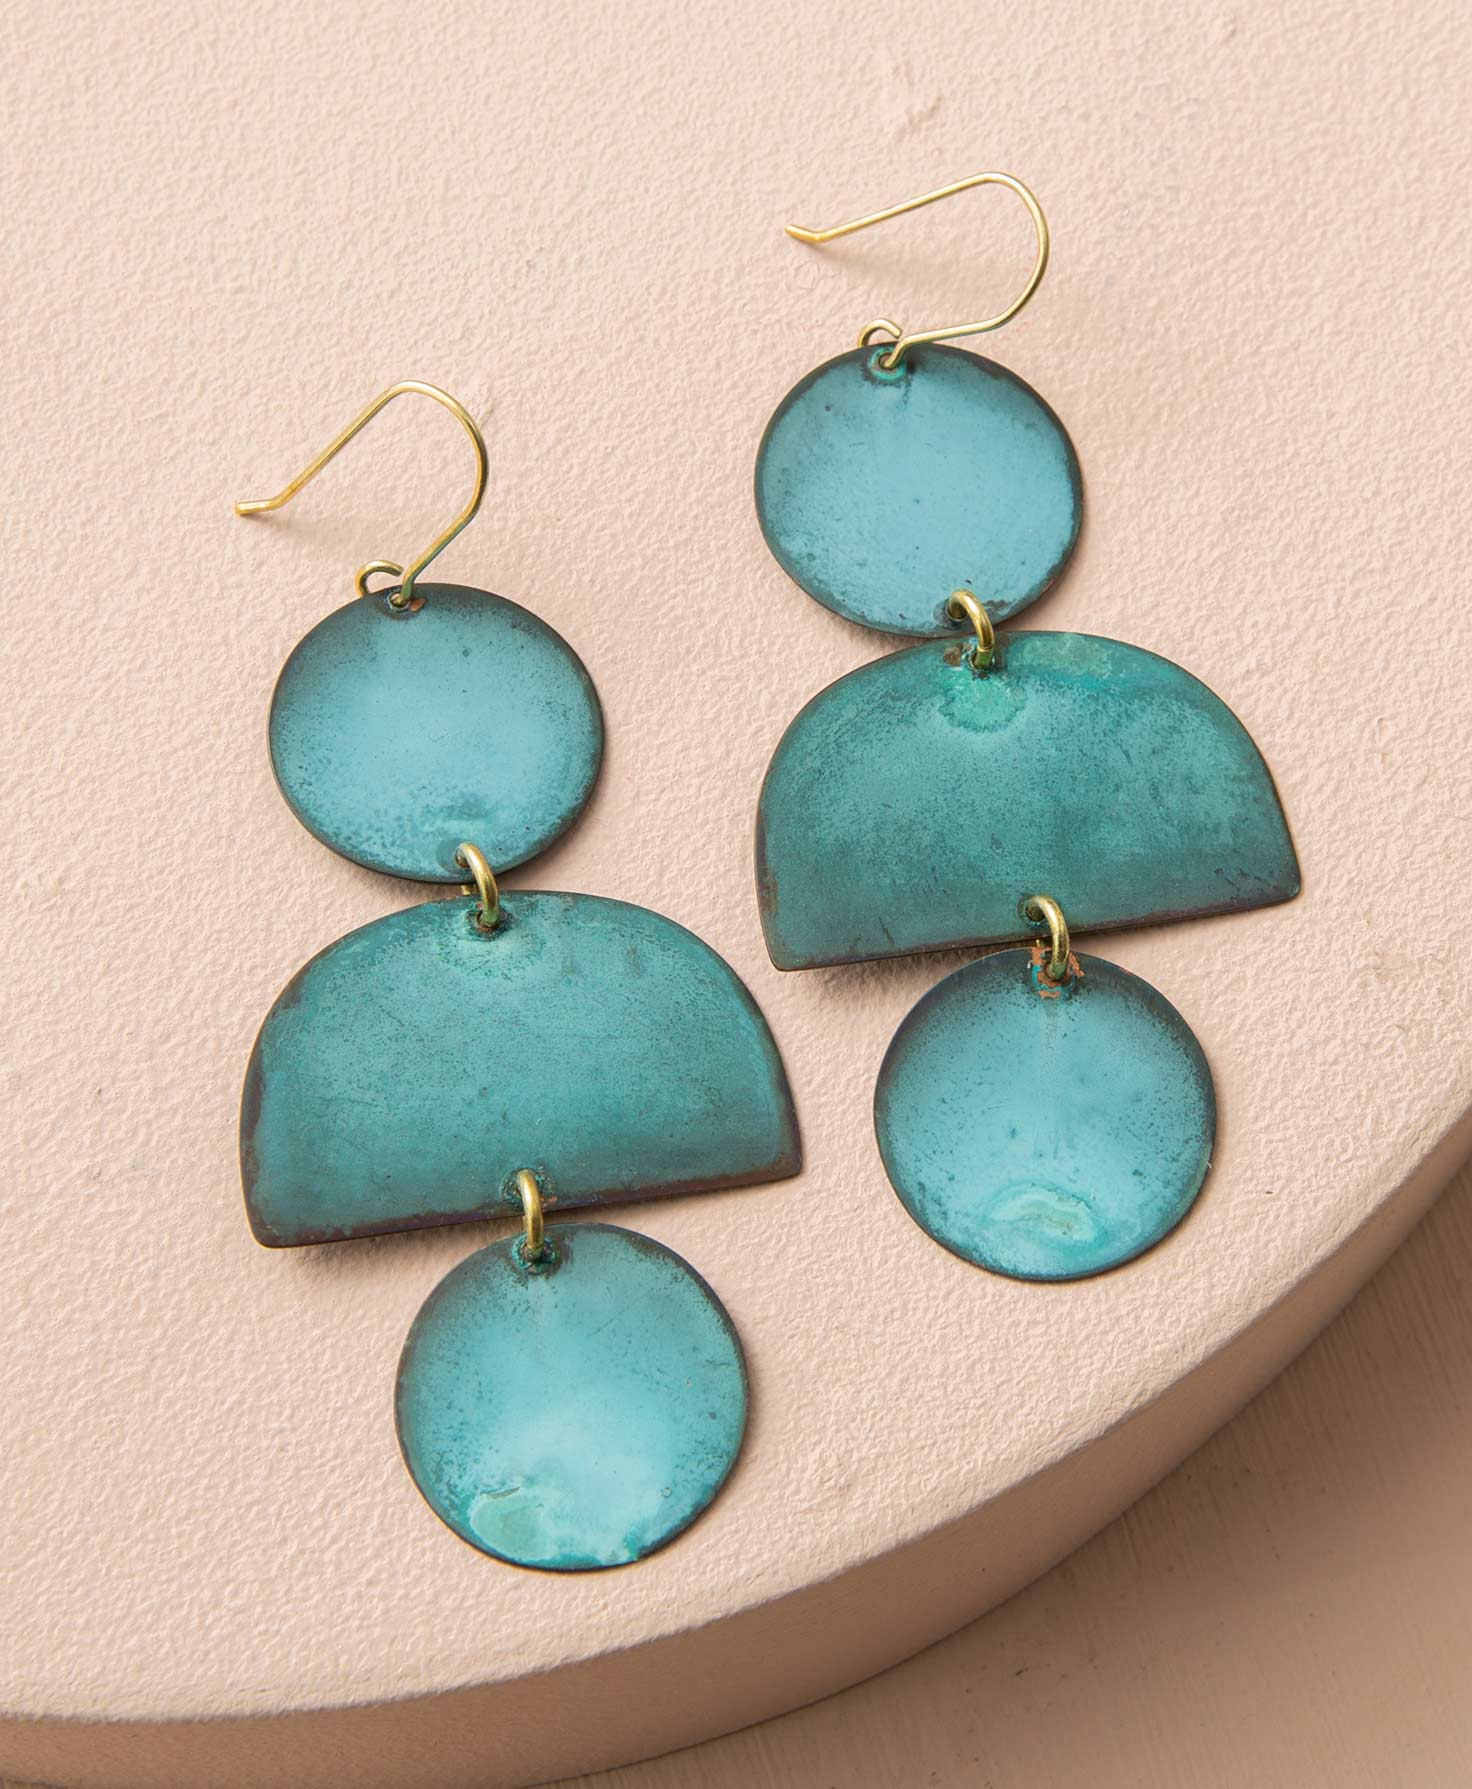 The Tide Pool Earrings sit on a blush colored block. They feature flat geometric shapes cut from copper that hang down from a gold ear hook. The copper has been patinated, giving it a vibrant teal hue with natural metallic variations. At the top of the earring is a circle shape. Connected to this is a semi-circle with its flat side facing down. Finally, at the bottom of the earring is a circle identical to the first.